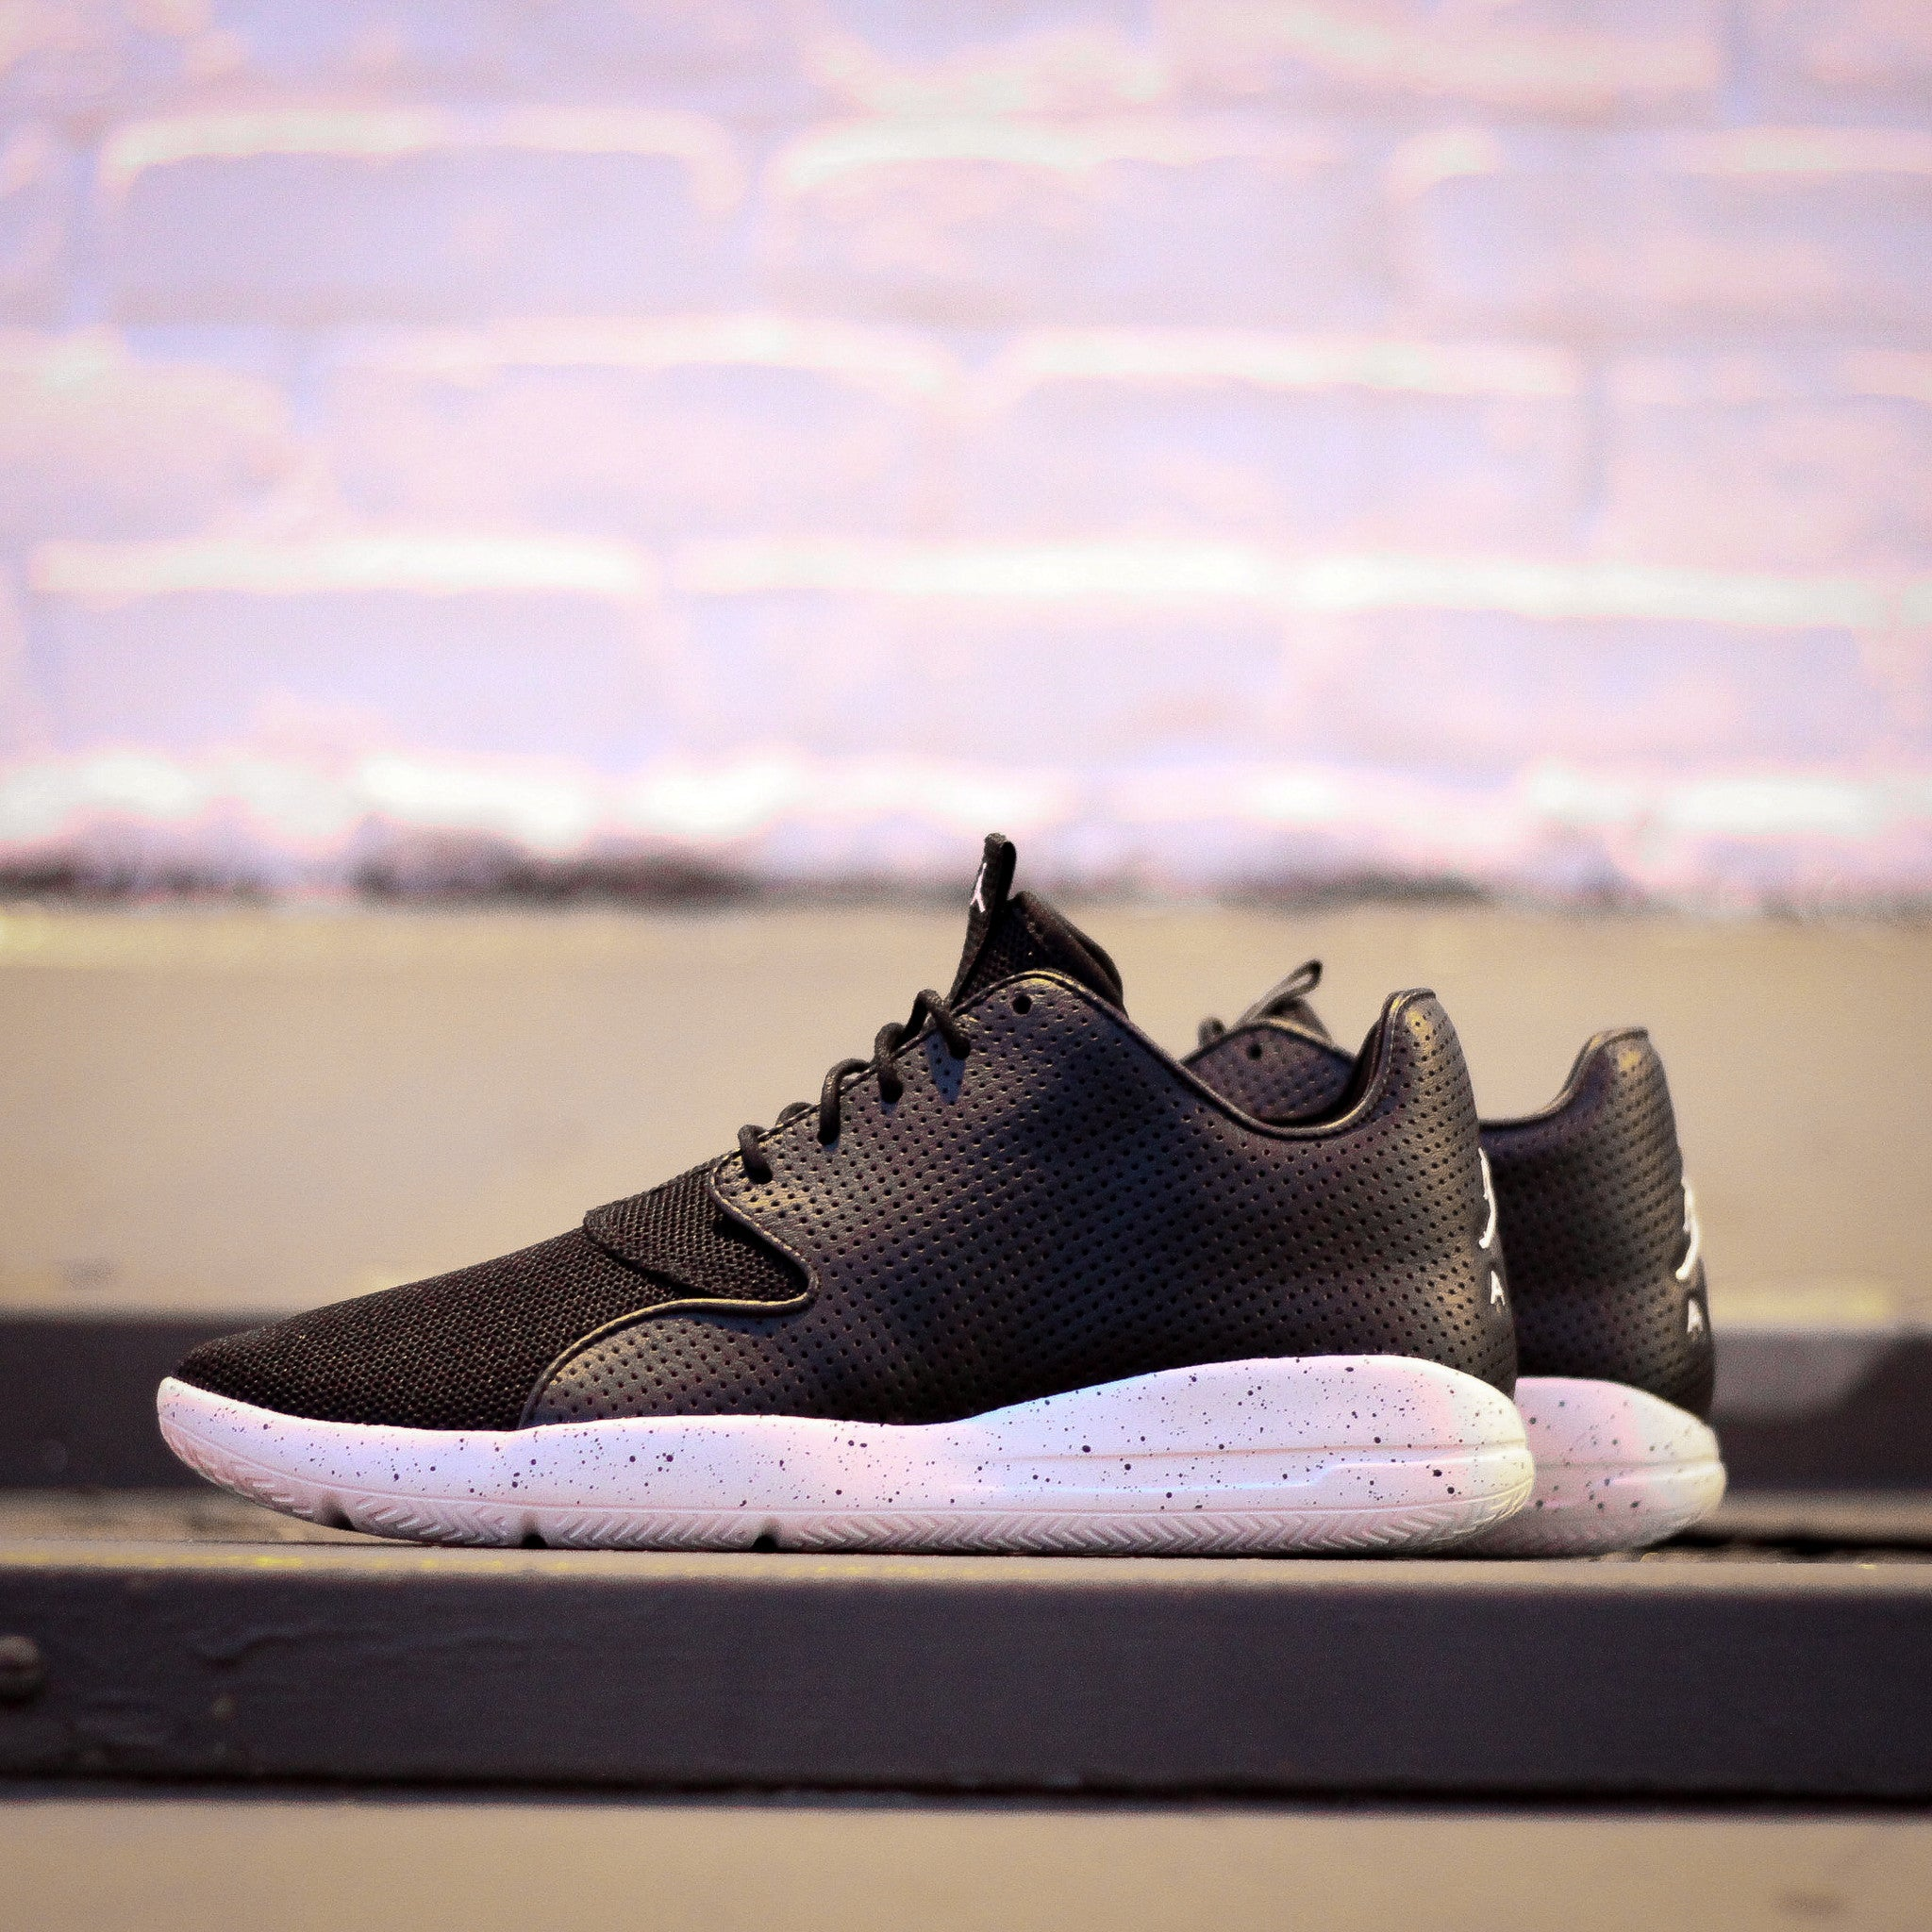 Air Jordan Eclipse PRM